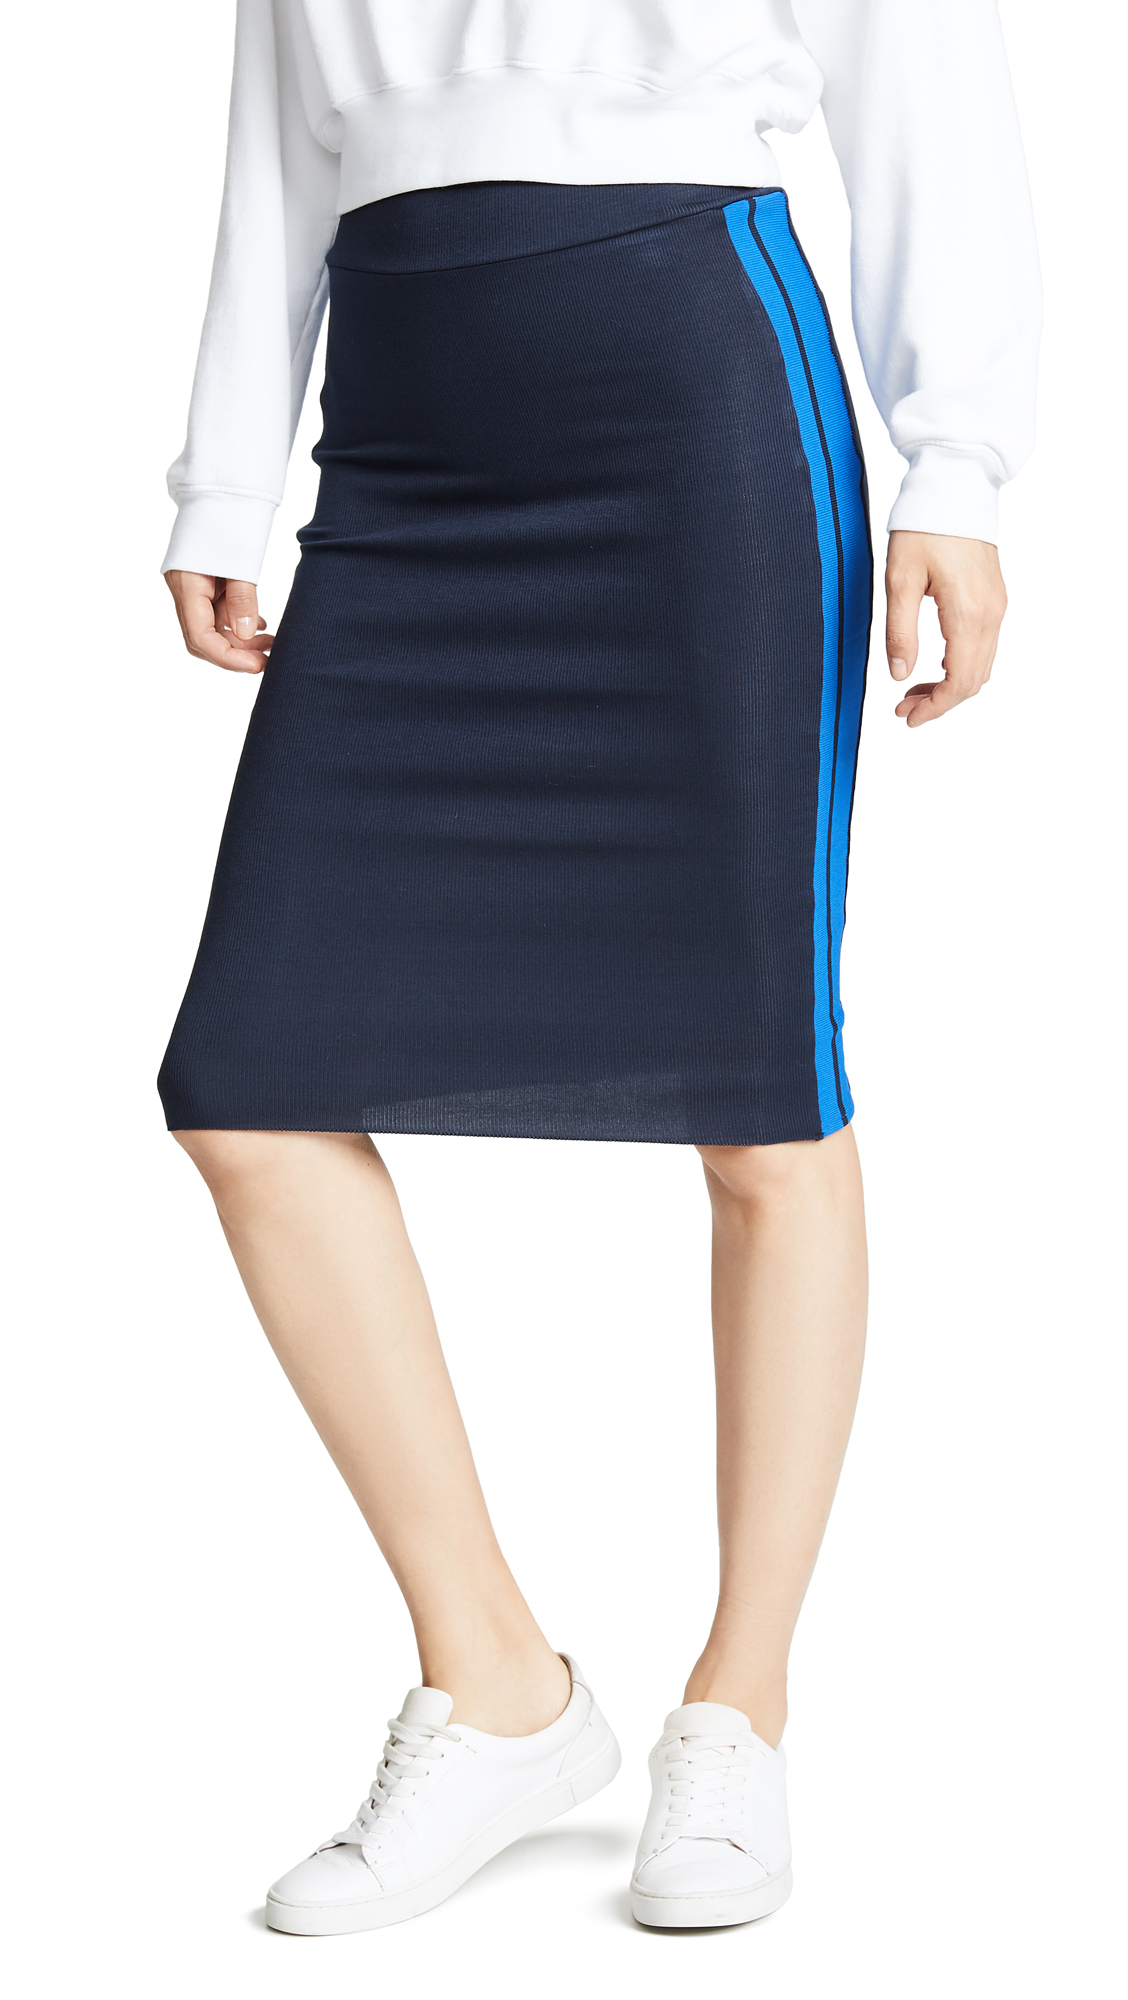 TWENTY MONTREAL Ribbed Racer Pencil Skirt - Navy/Cobalt